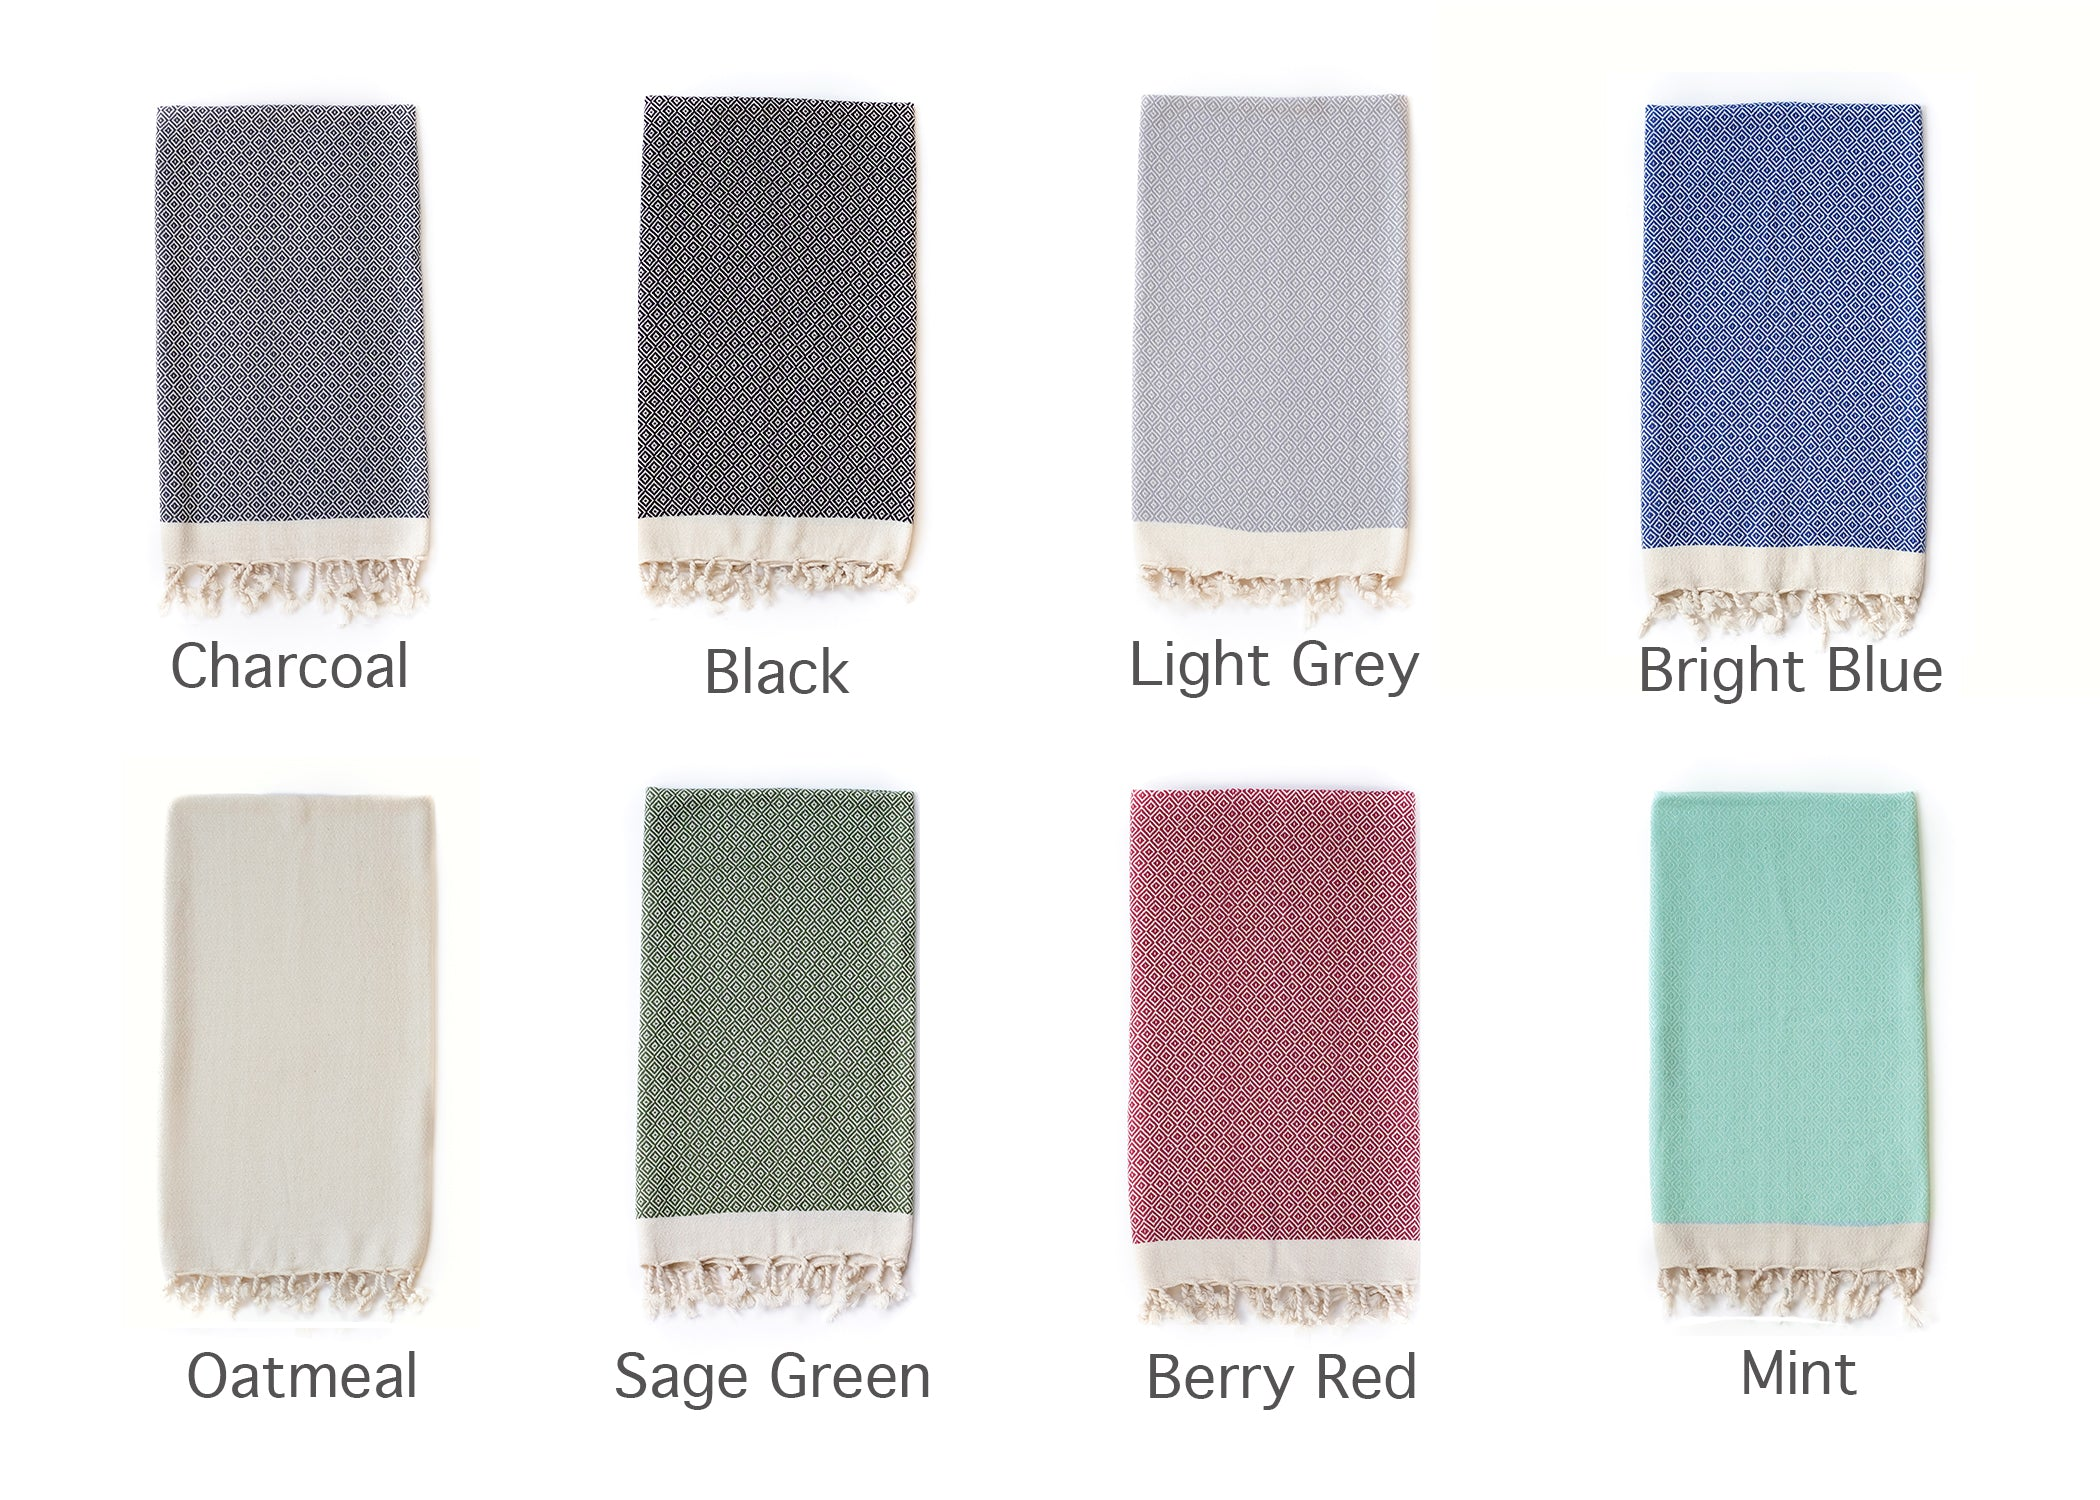 Samimi maxi a luxury lightweight bath towel by Arc lore, displayed in a variety of colours in diamond pattern